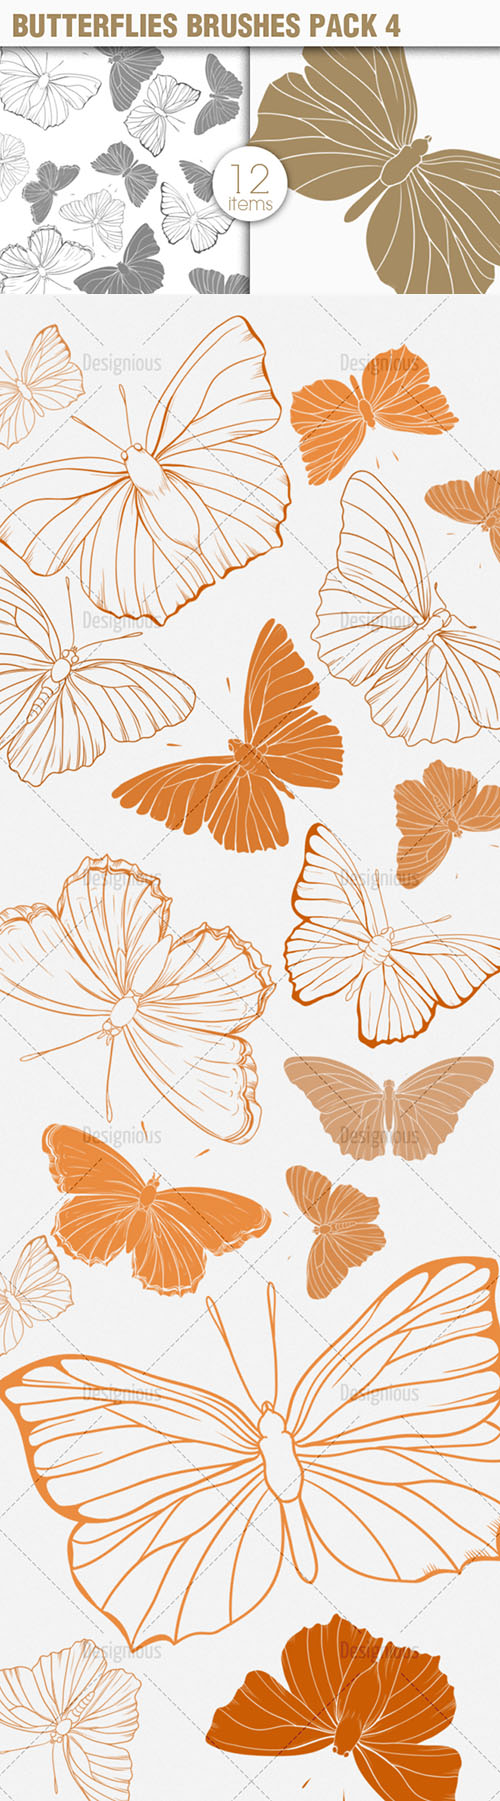 Butterflies Photoshop Brushes Pack 4